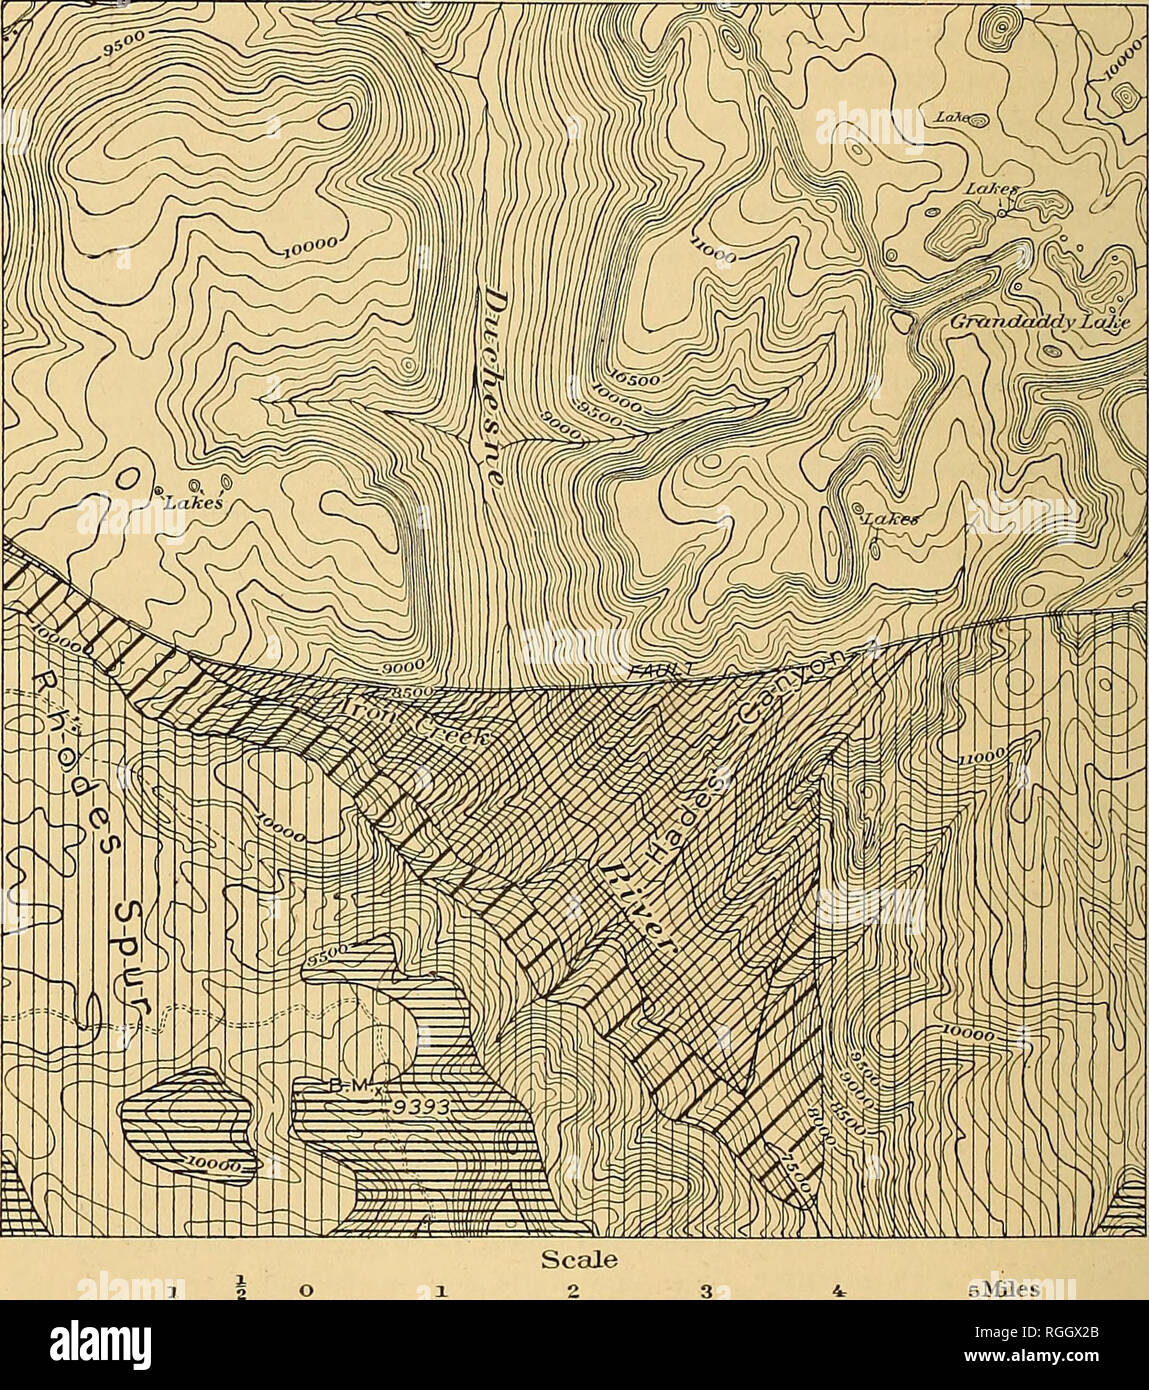 Bulletin of the Geological Society of America. Geology. 296 S. P. ...